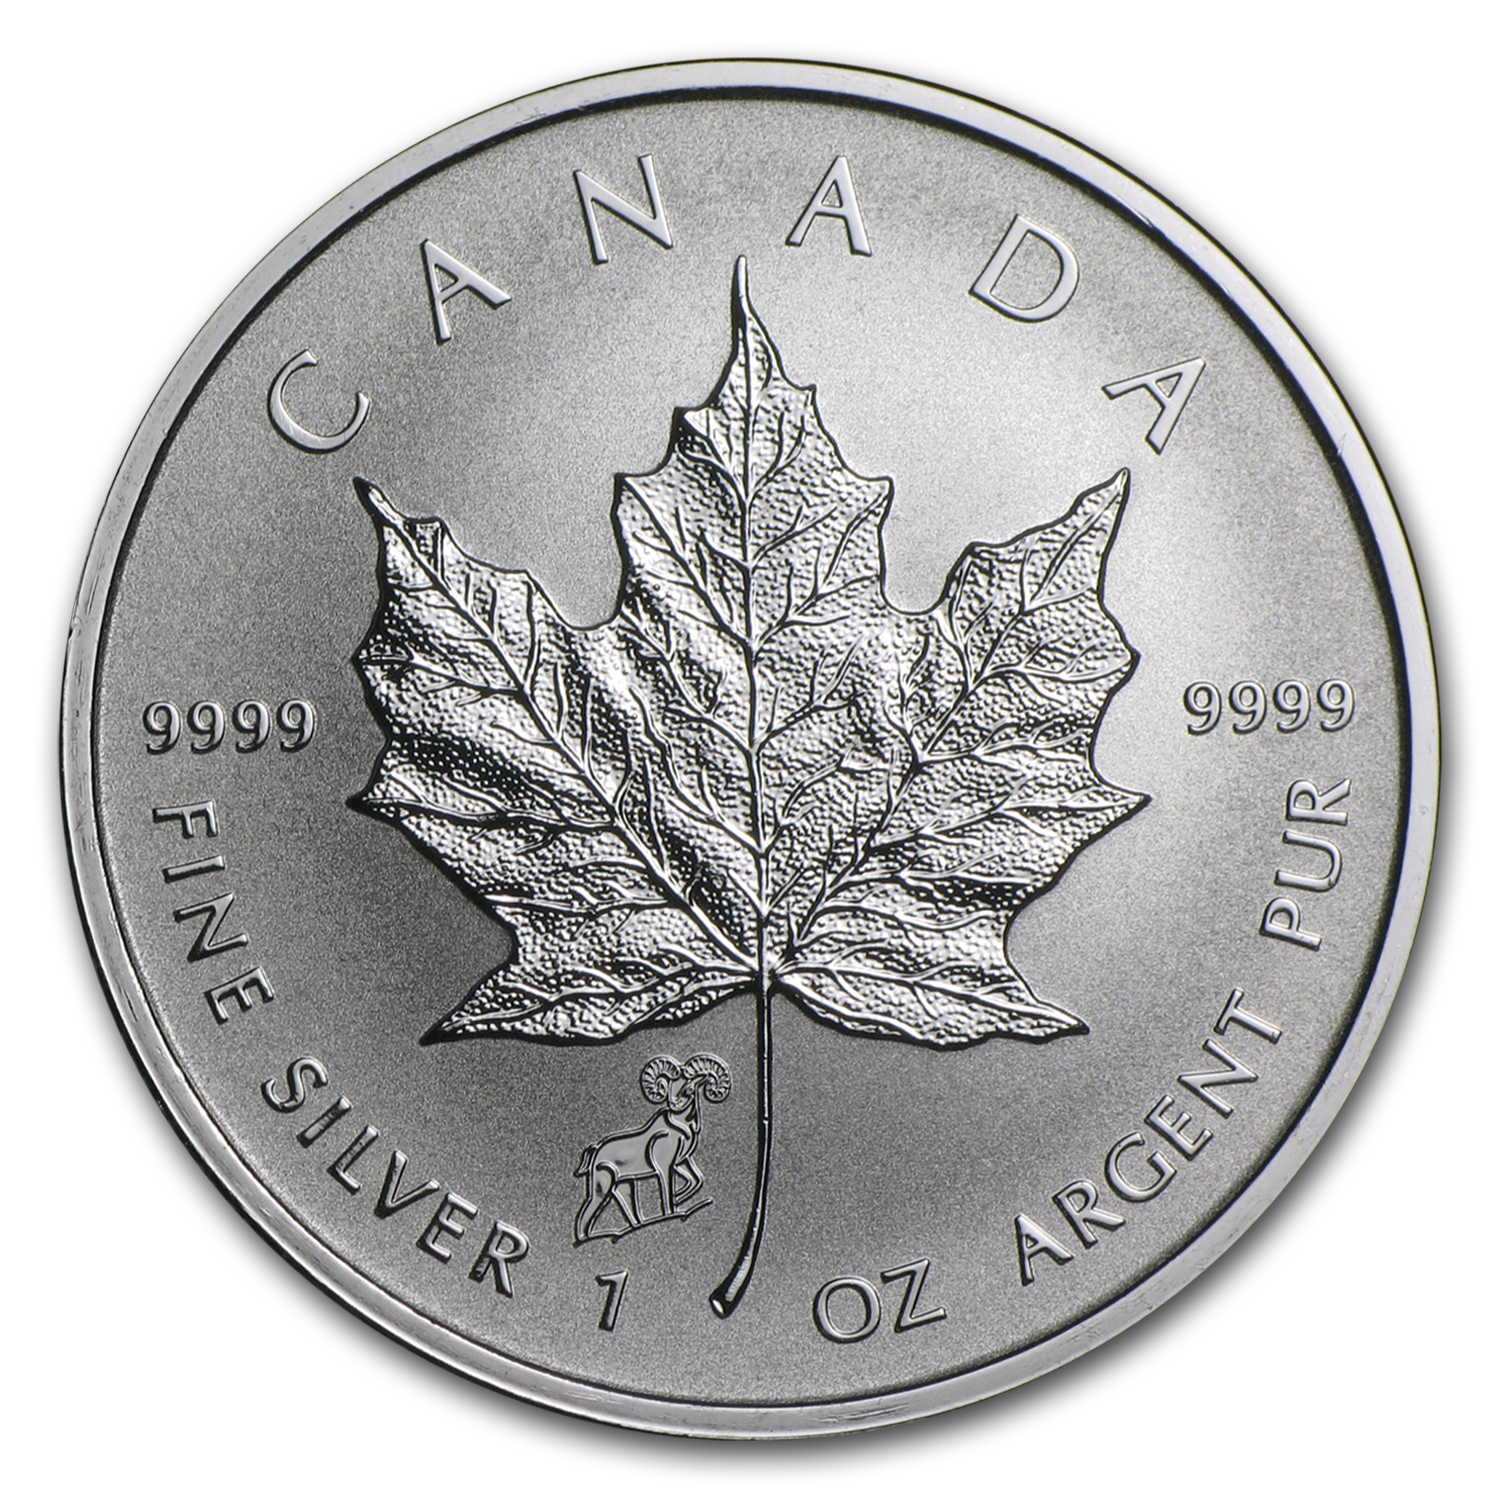 2015 Canada 1 oz Silver Maple Leaf Lunar Sheep Privy